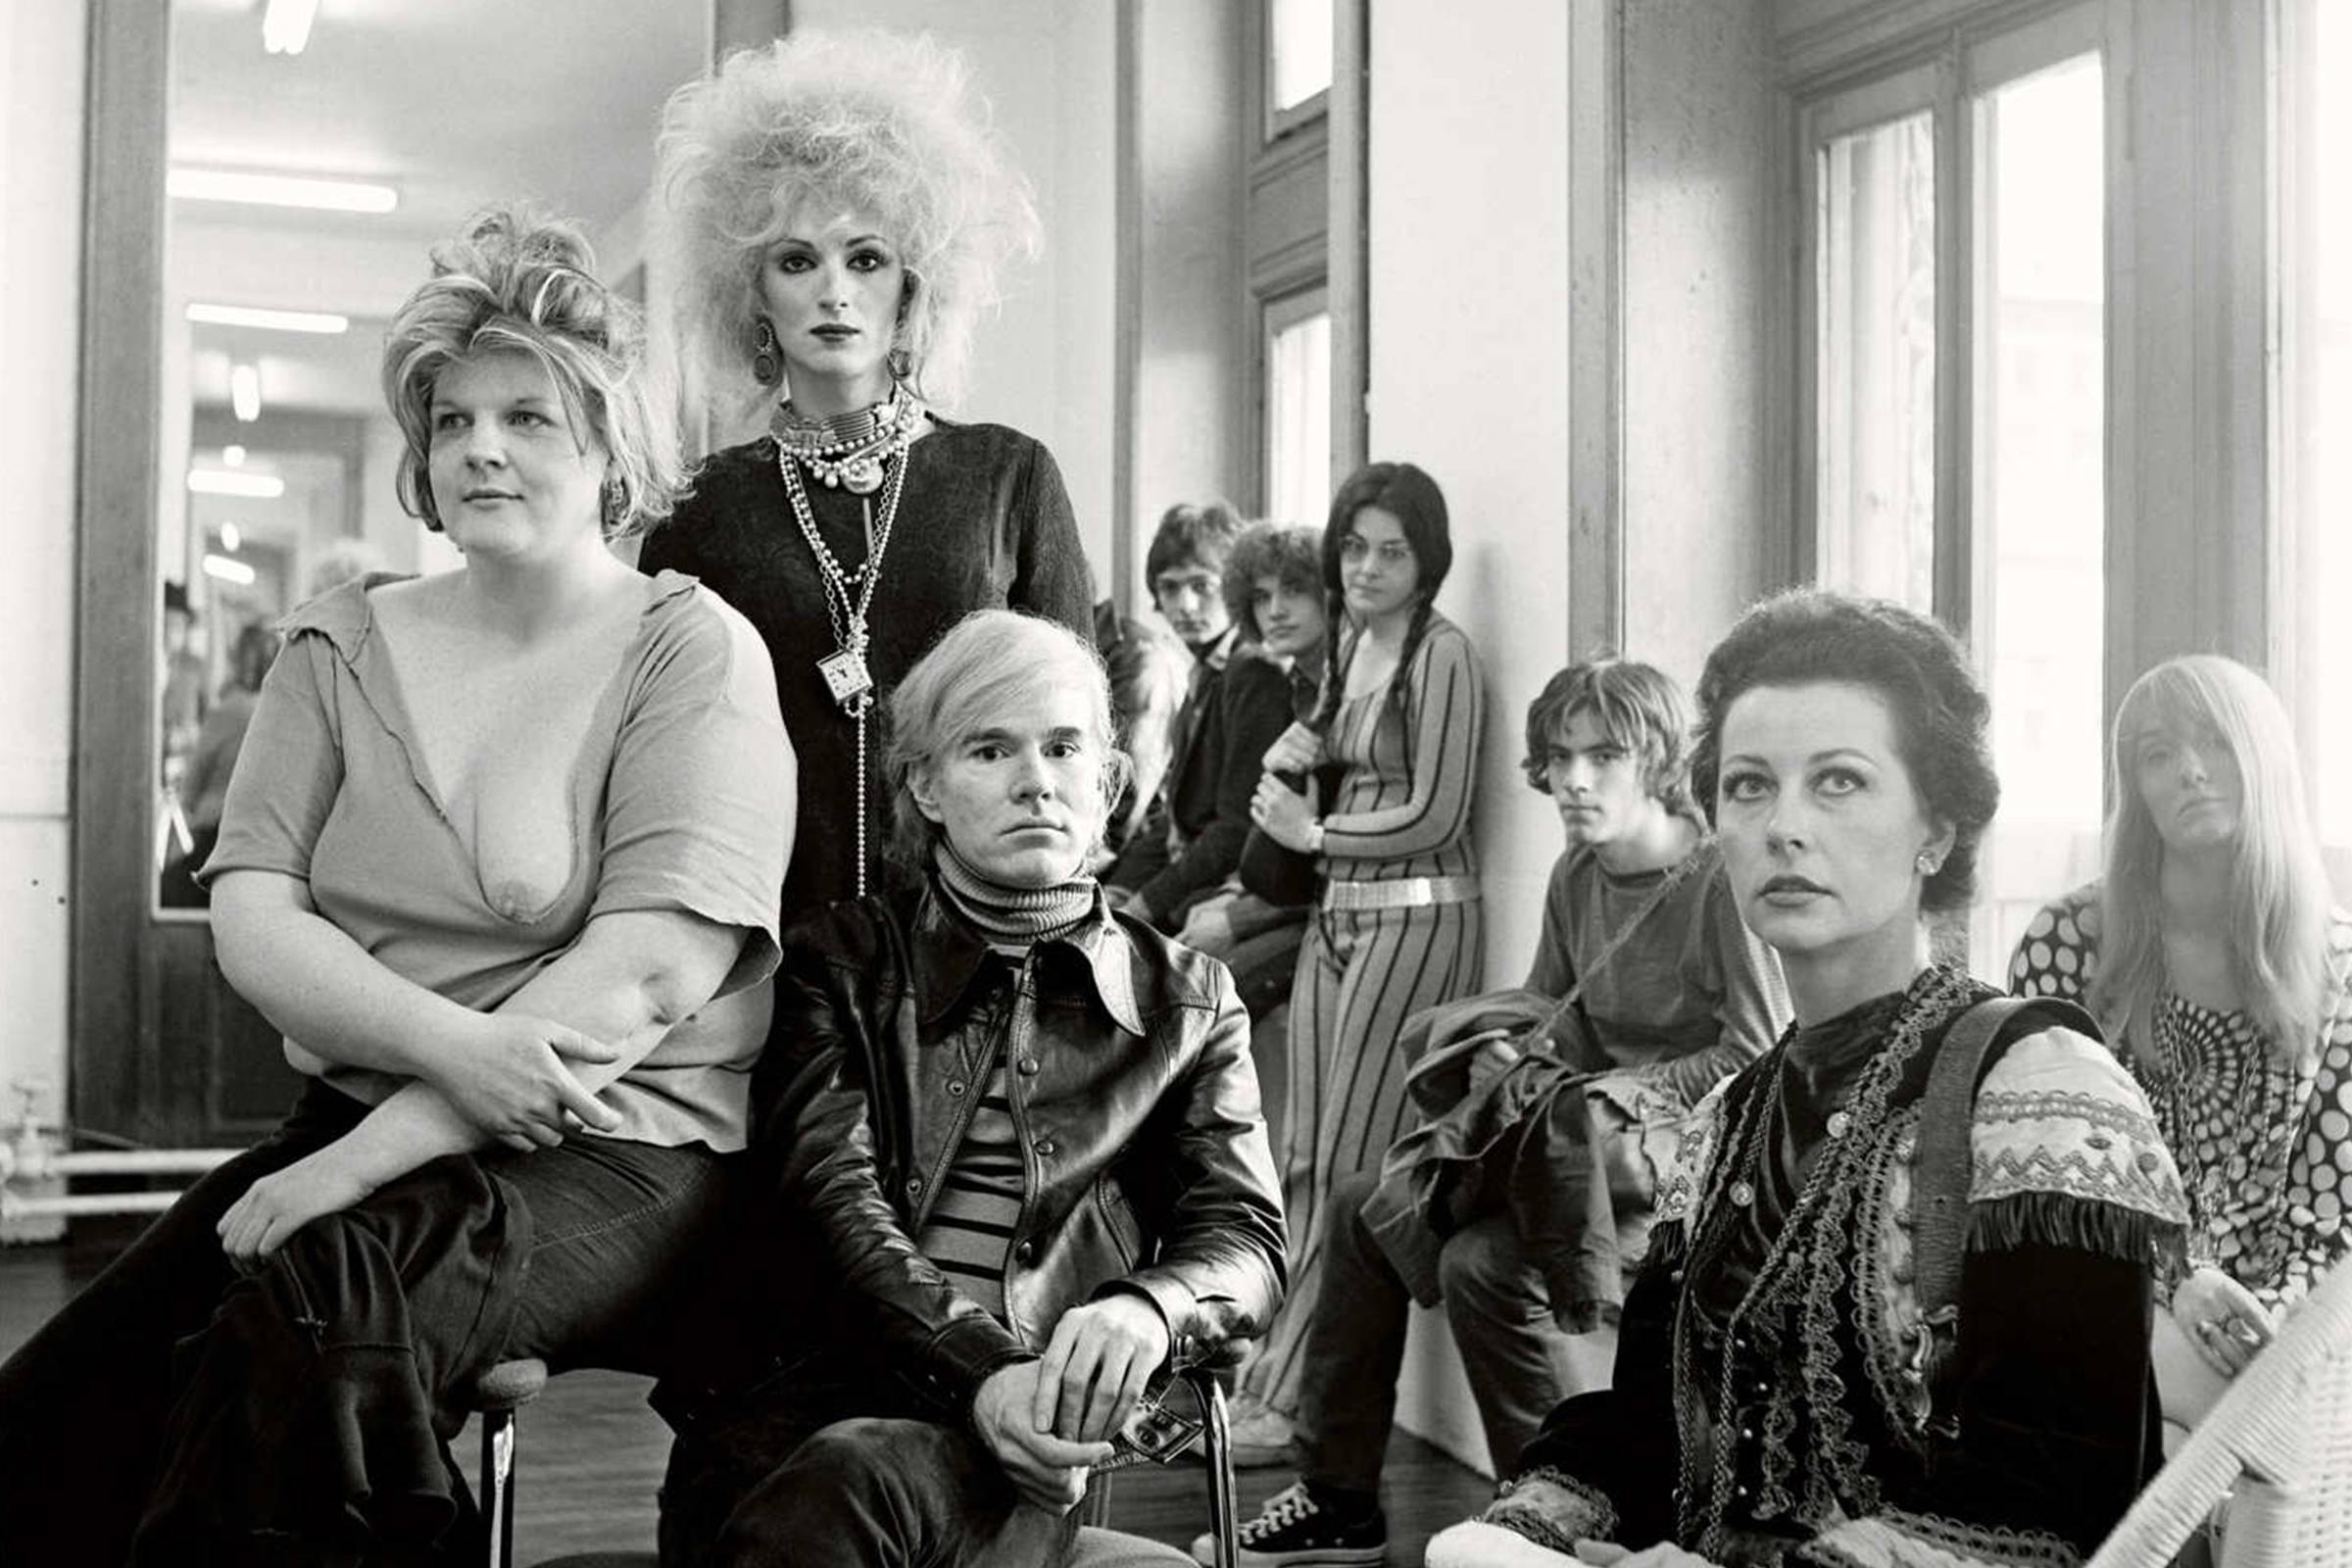 Warhol surrounded by muses at the Factory, 1960s